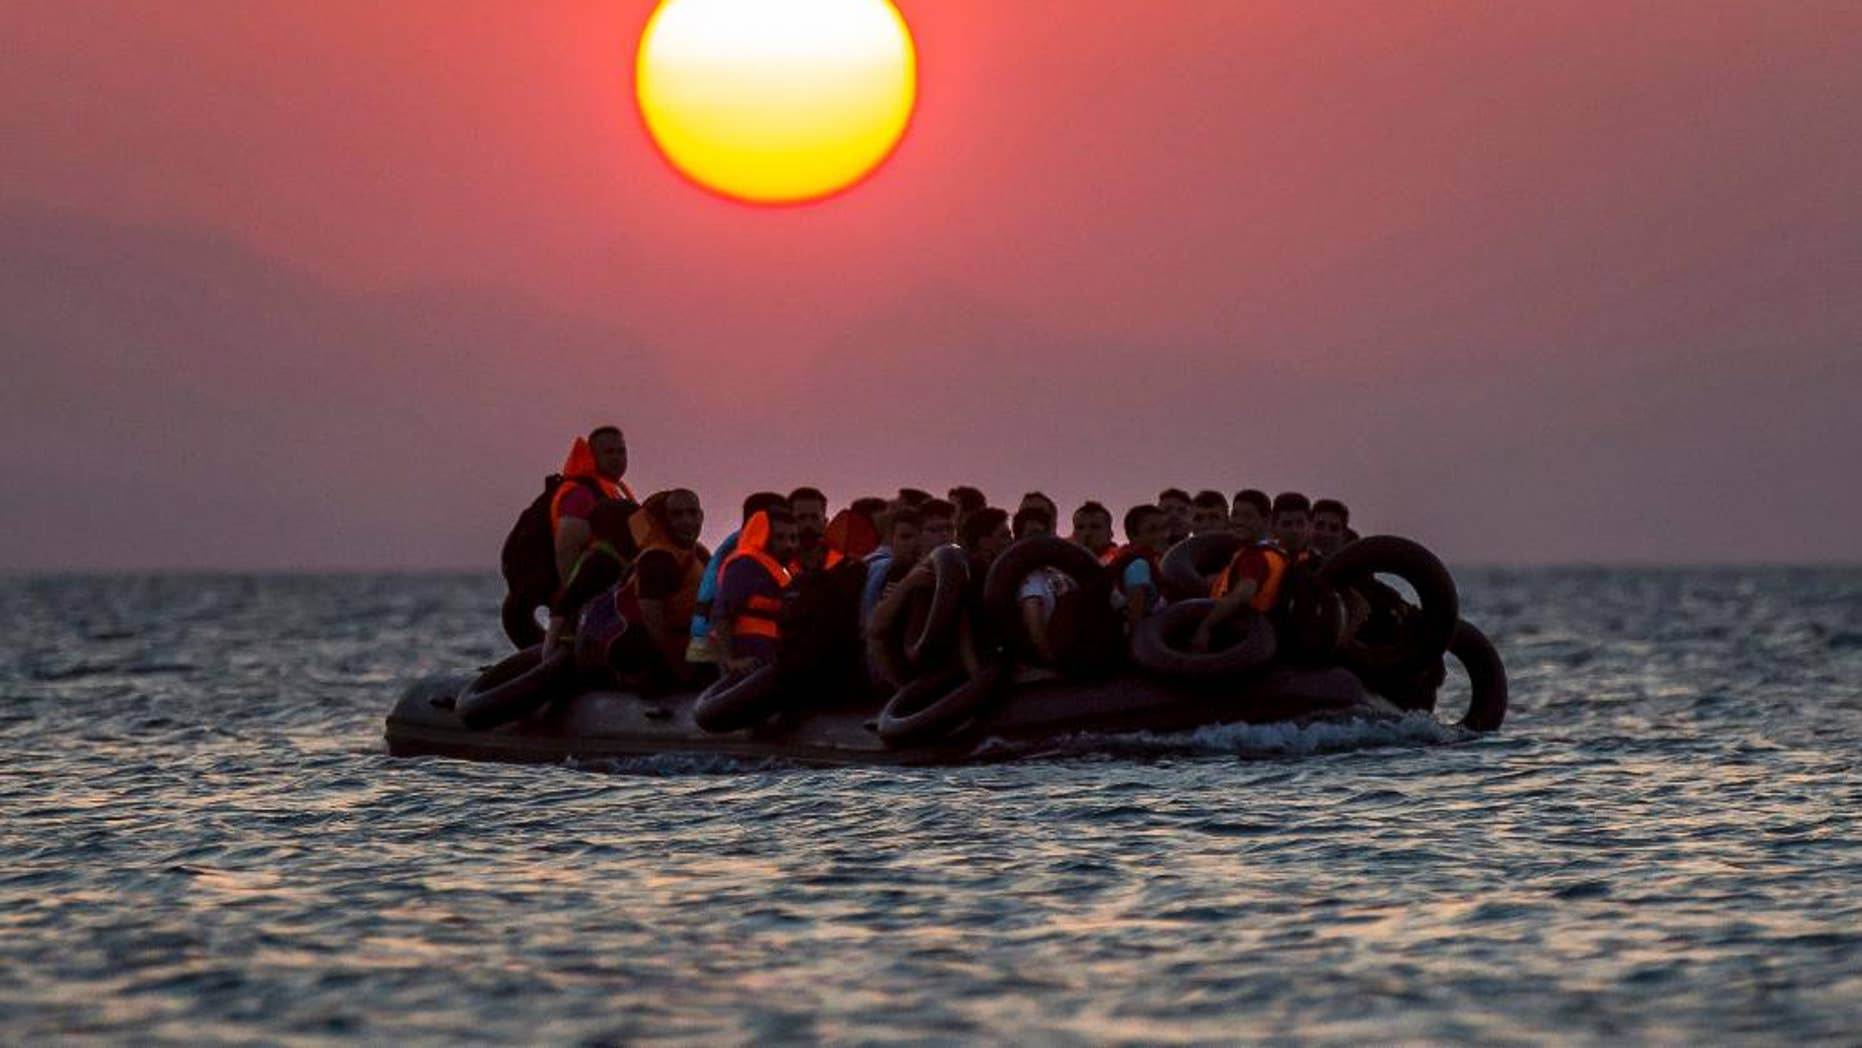 FILE - In this file photo taken on Aug. 13, 2015, migrants on a dinghy approach the southeastern island of Kos, Greece. About 340 migrants have died or gone missing in four Mediterranean Sea shipwrecks over the past two-and-a-half days during the deadliest year on record, as smugglers force departures despite rough, winter seas, a migration organization said Thursday, Nov. 17, 2016. (AP Photo/Alexander Zemlianichenko)